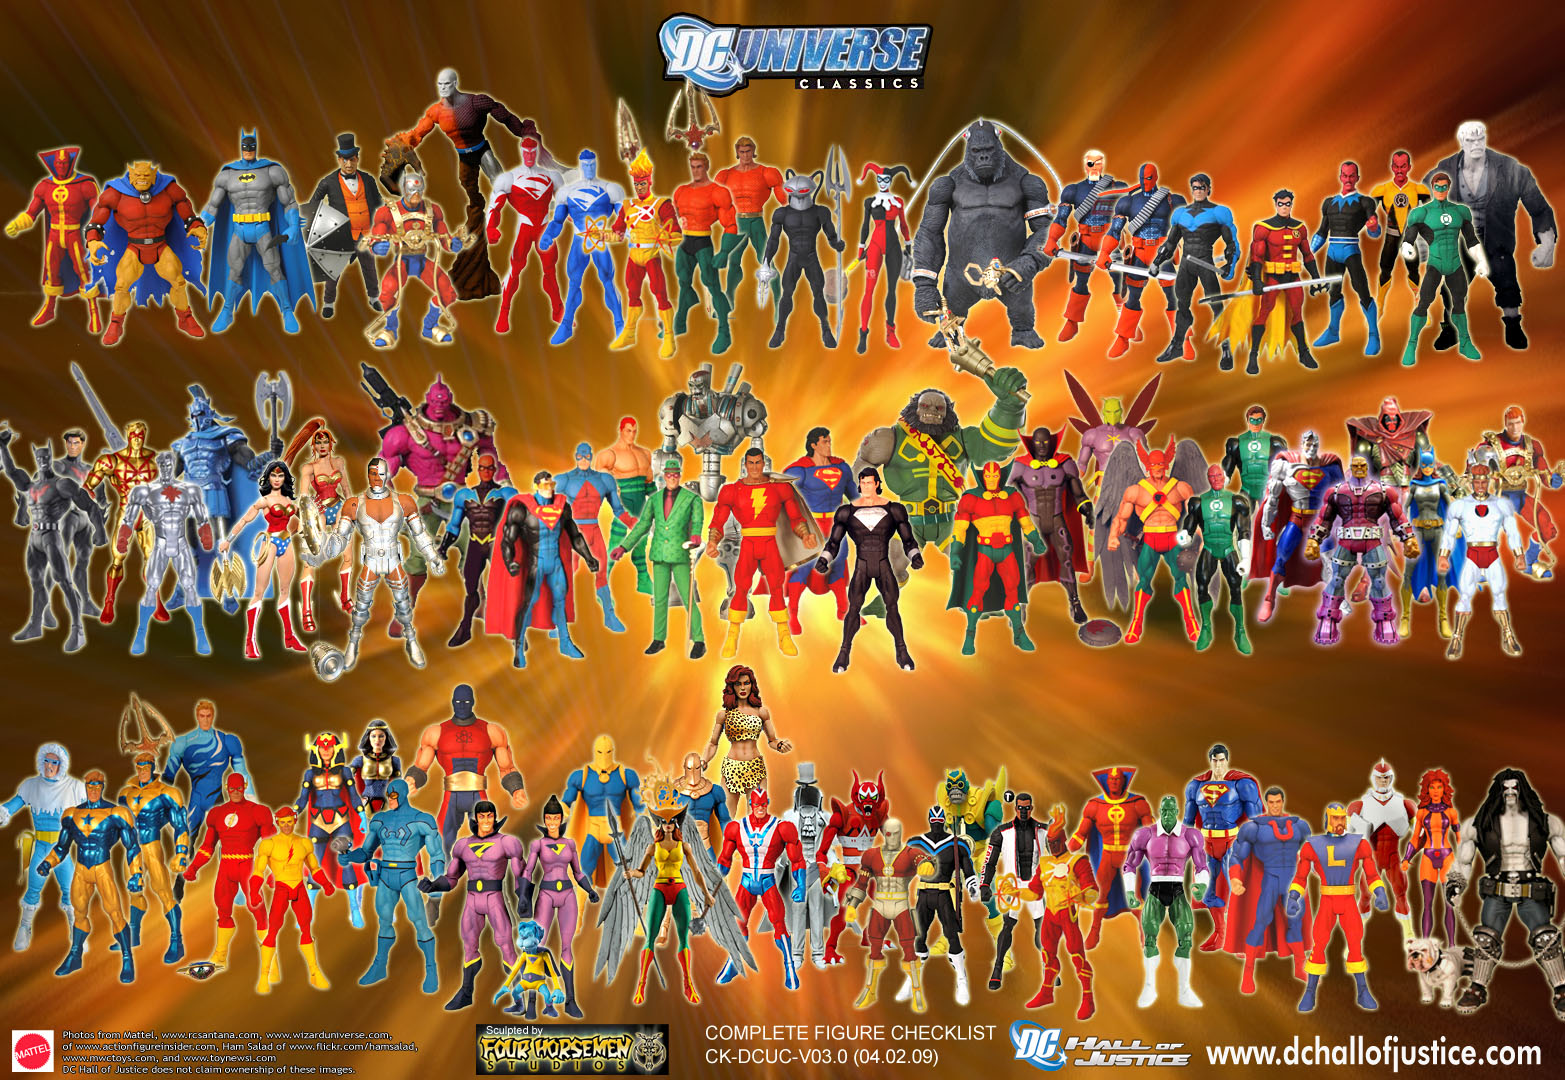 ck dcuc jpg times dc reference classic ck dcuc jpg 1565times1080 dc reference classic universe and dc universe